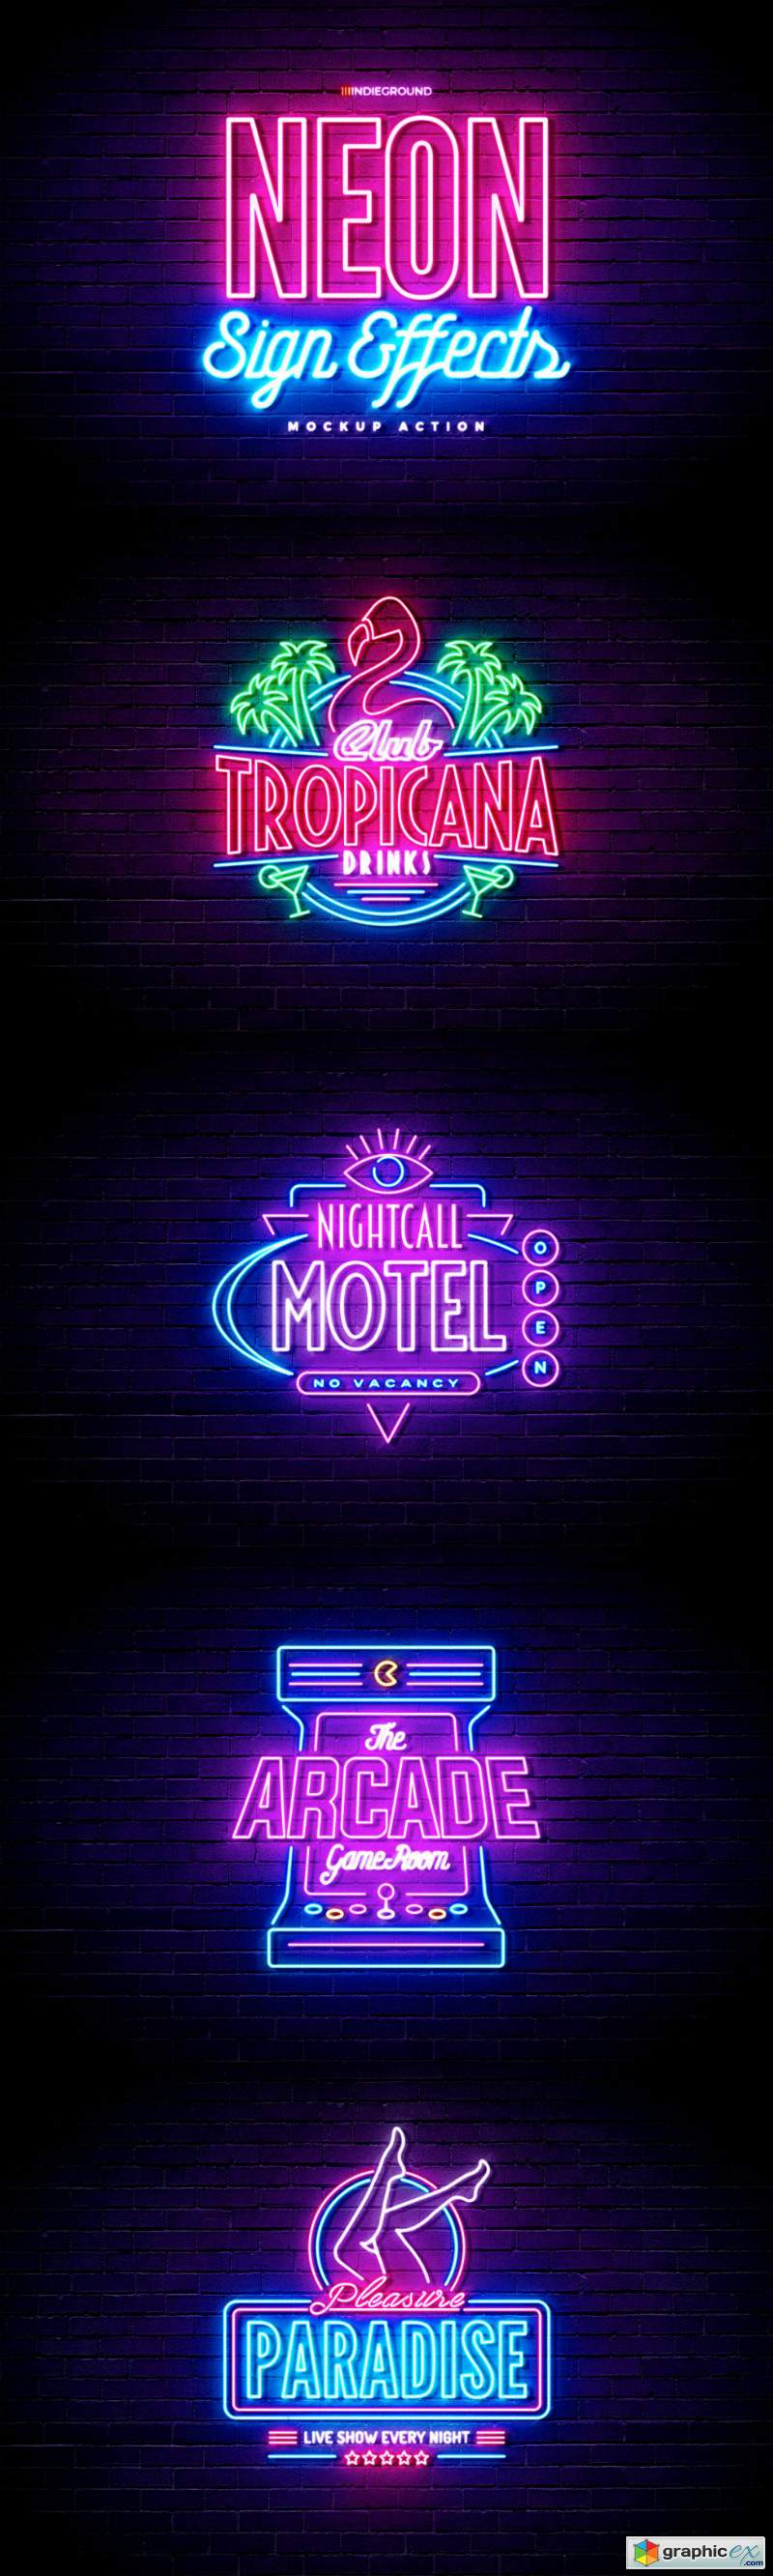 Neon Sign Effects 3893928